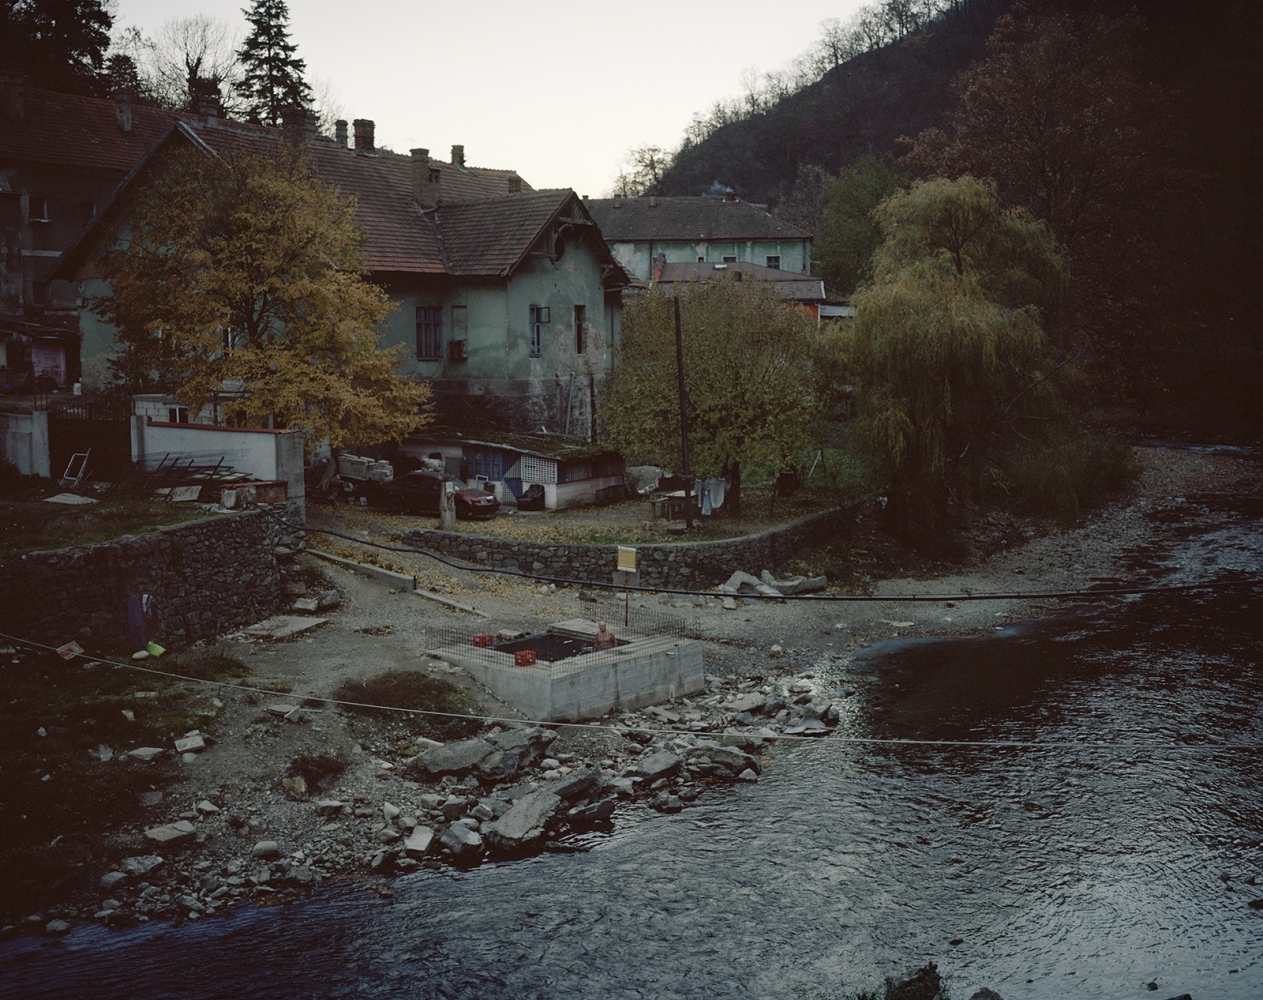 Romania, Baile Herculane. a view of a popular thermal resort.